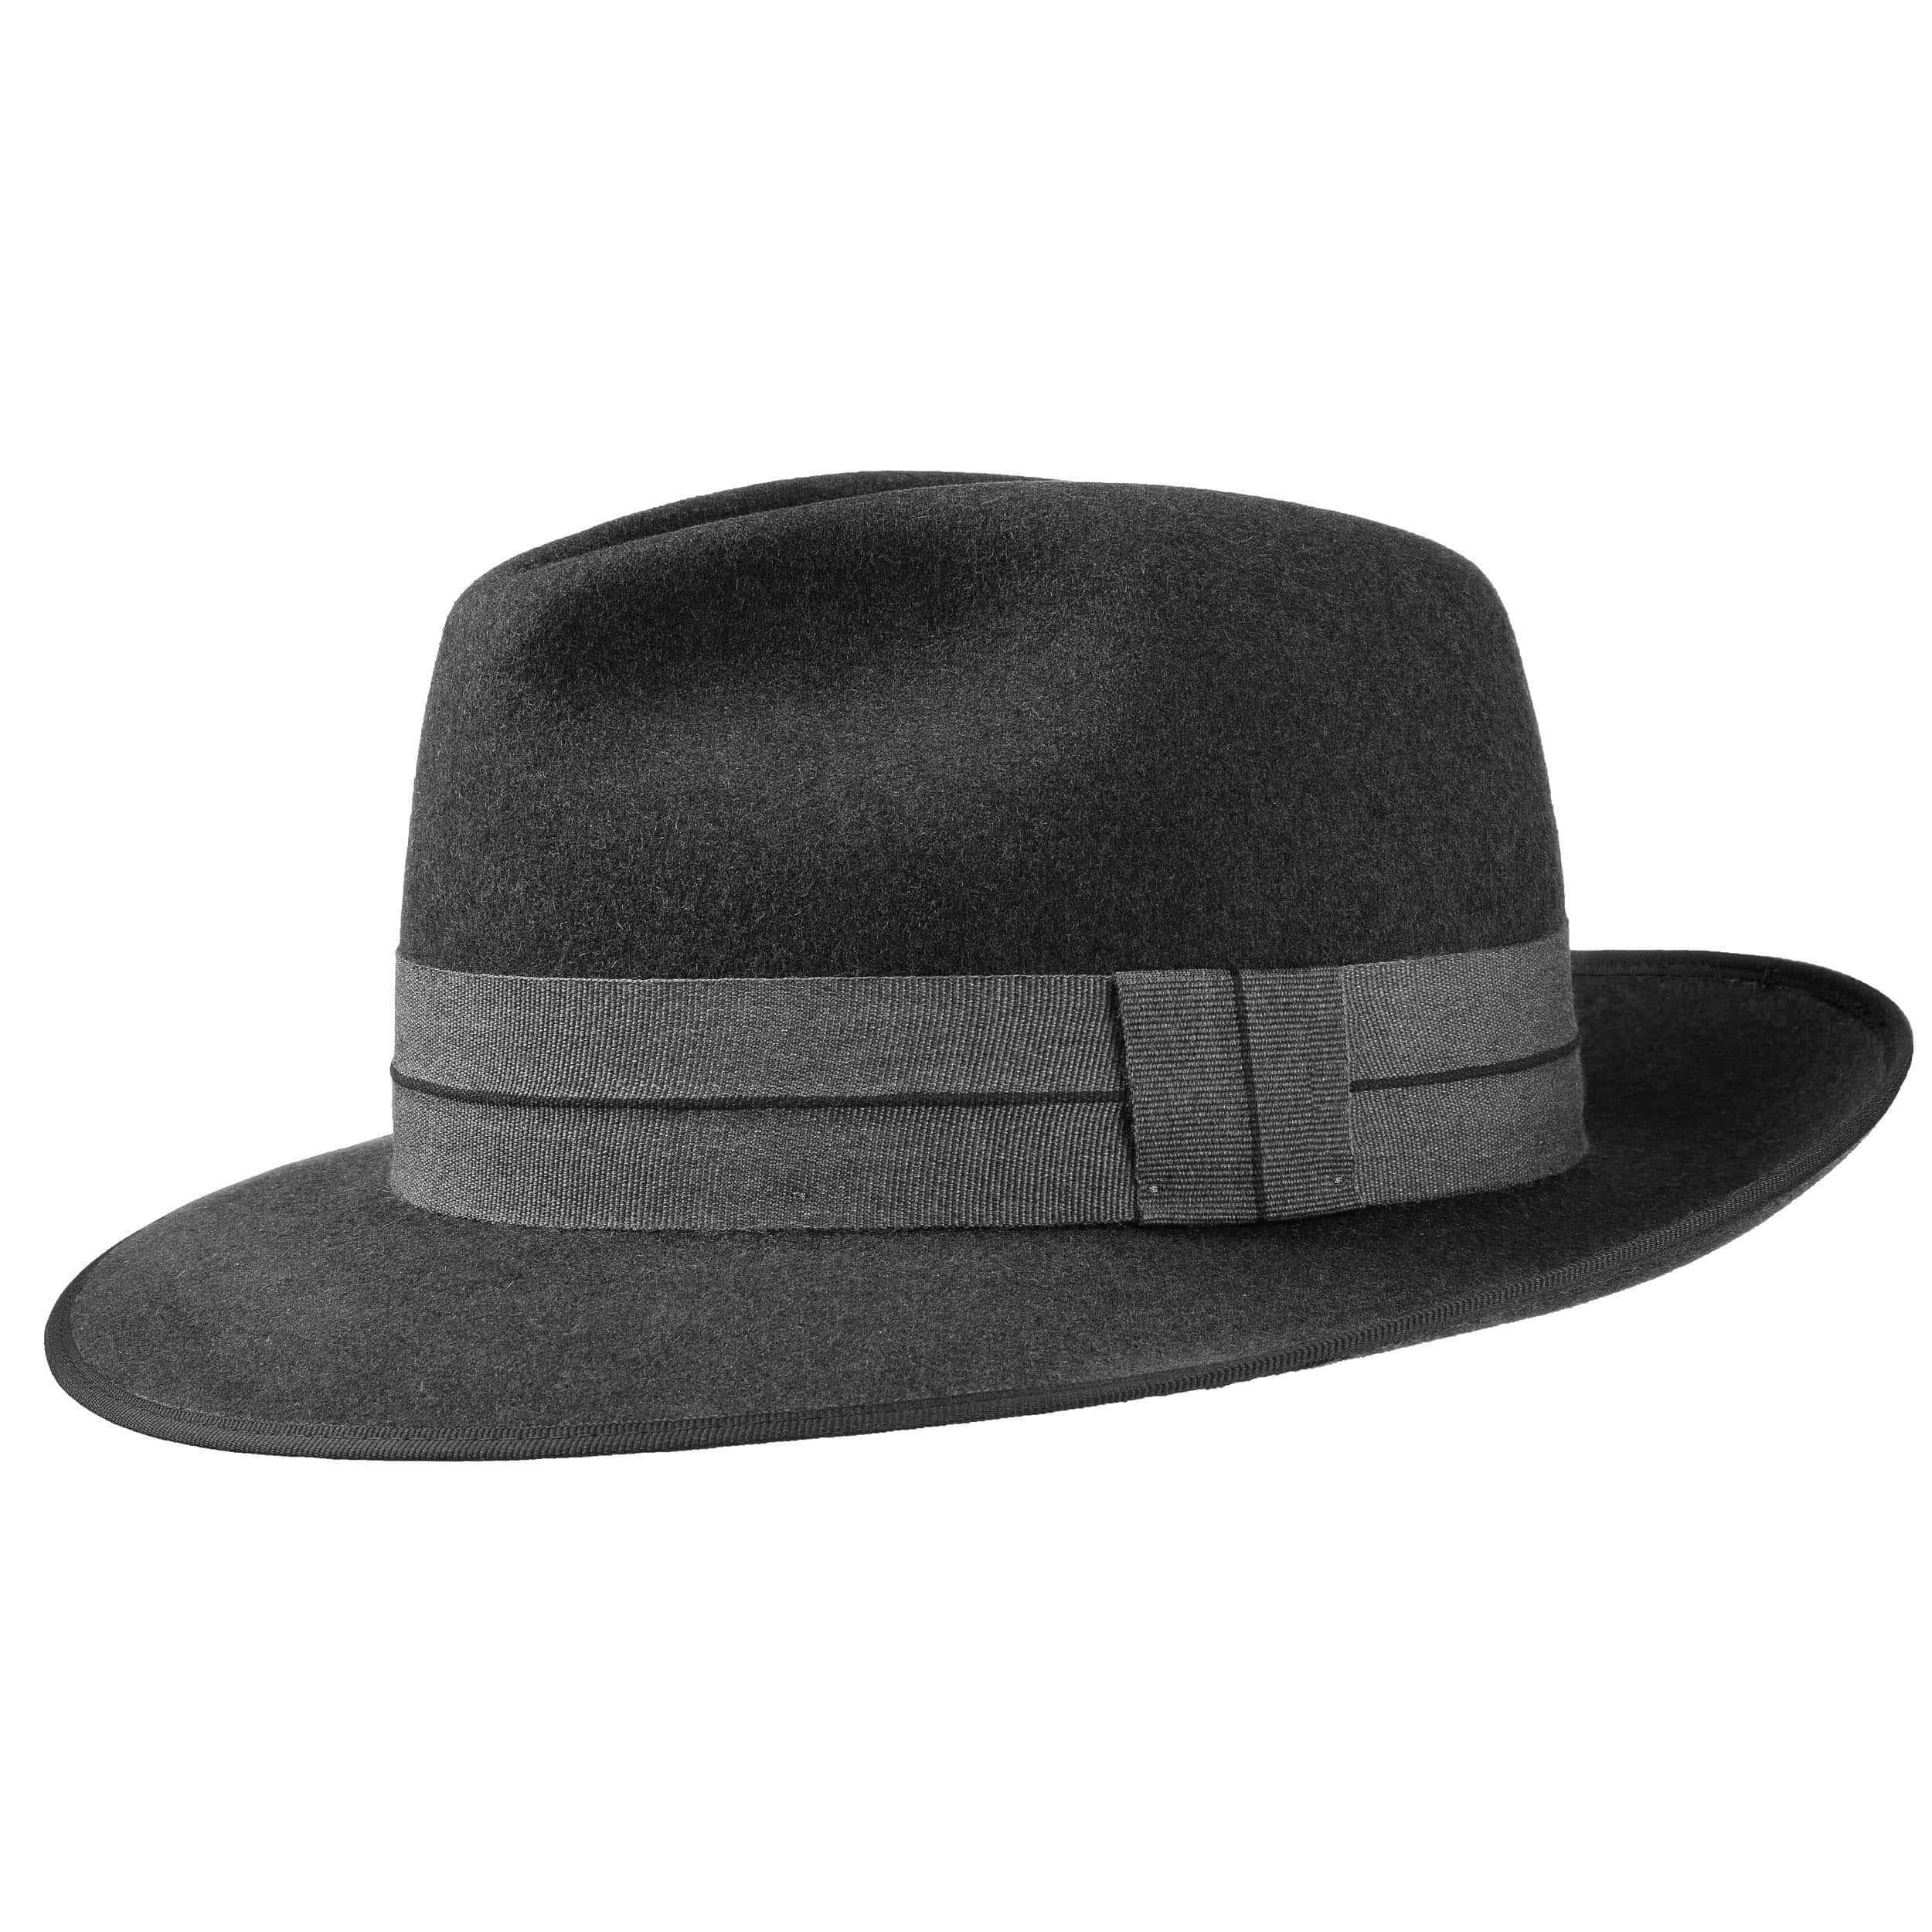 ... Virgi Wool Felt Hat by Stetson - anthracite 5 48f3b84f49b3